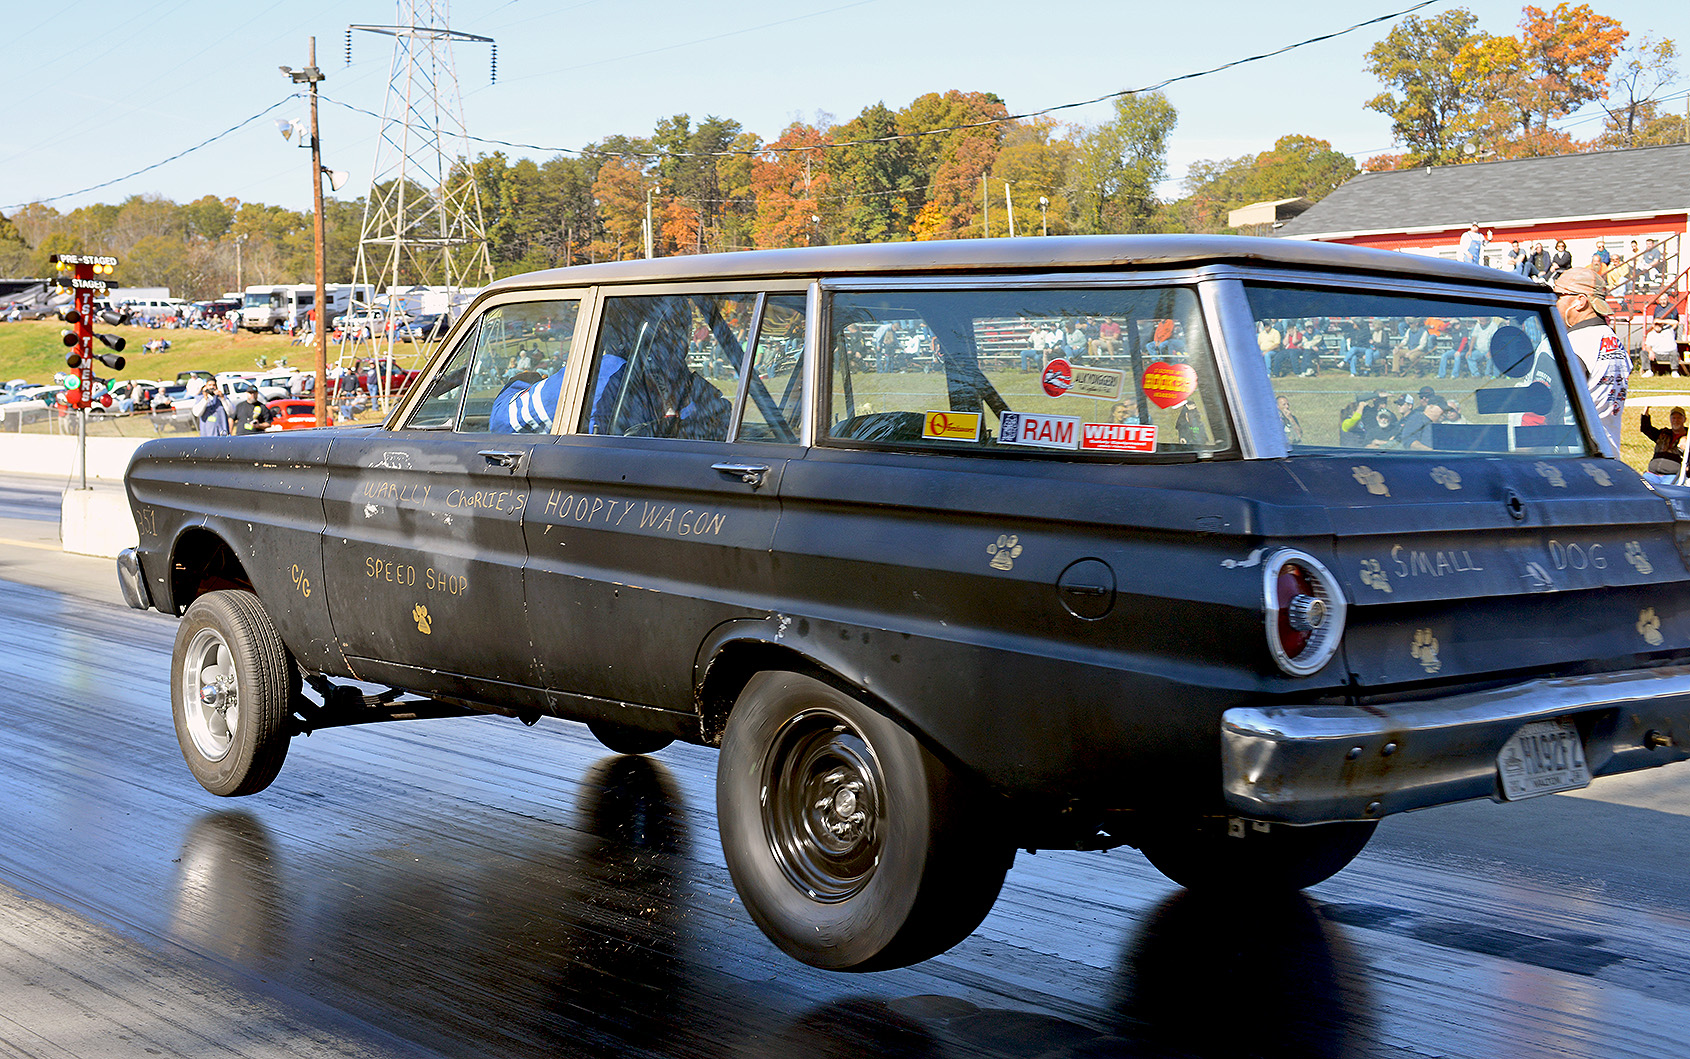 2014-11-8 Gasser_218 The Amazing levitating Hoopty Wagon_Fl.jpg